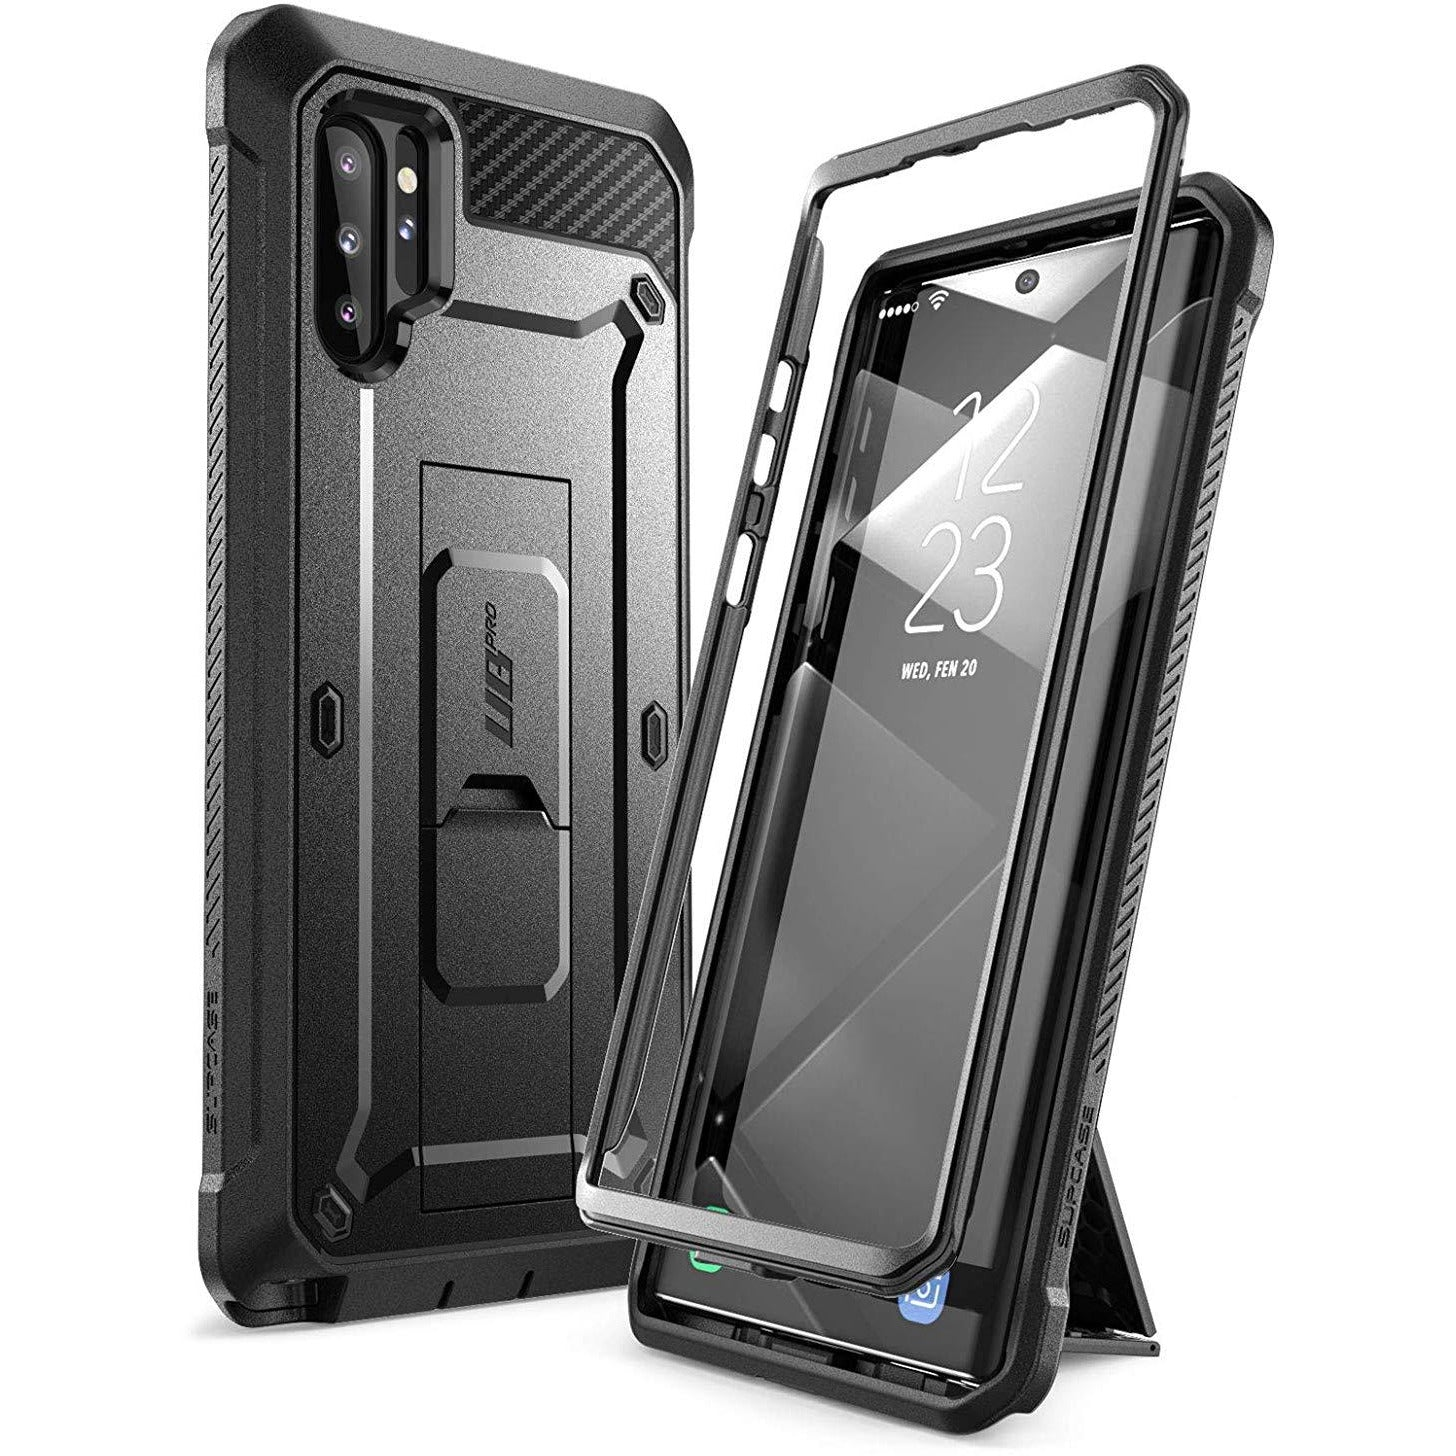 Supcase Unicorn Beetle Pro Series Case Designed for Samsung Galaxy Note 10 Plus/5G, Full-Body Rugged Holster & Kickstand Without Built-in Screen Protector (Black)